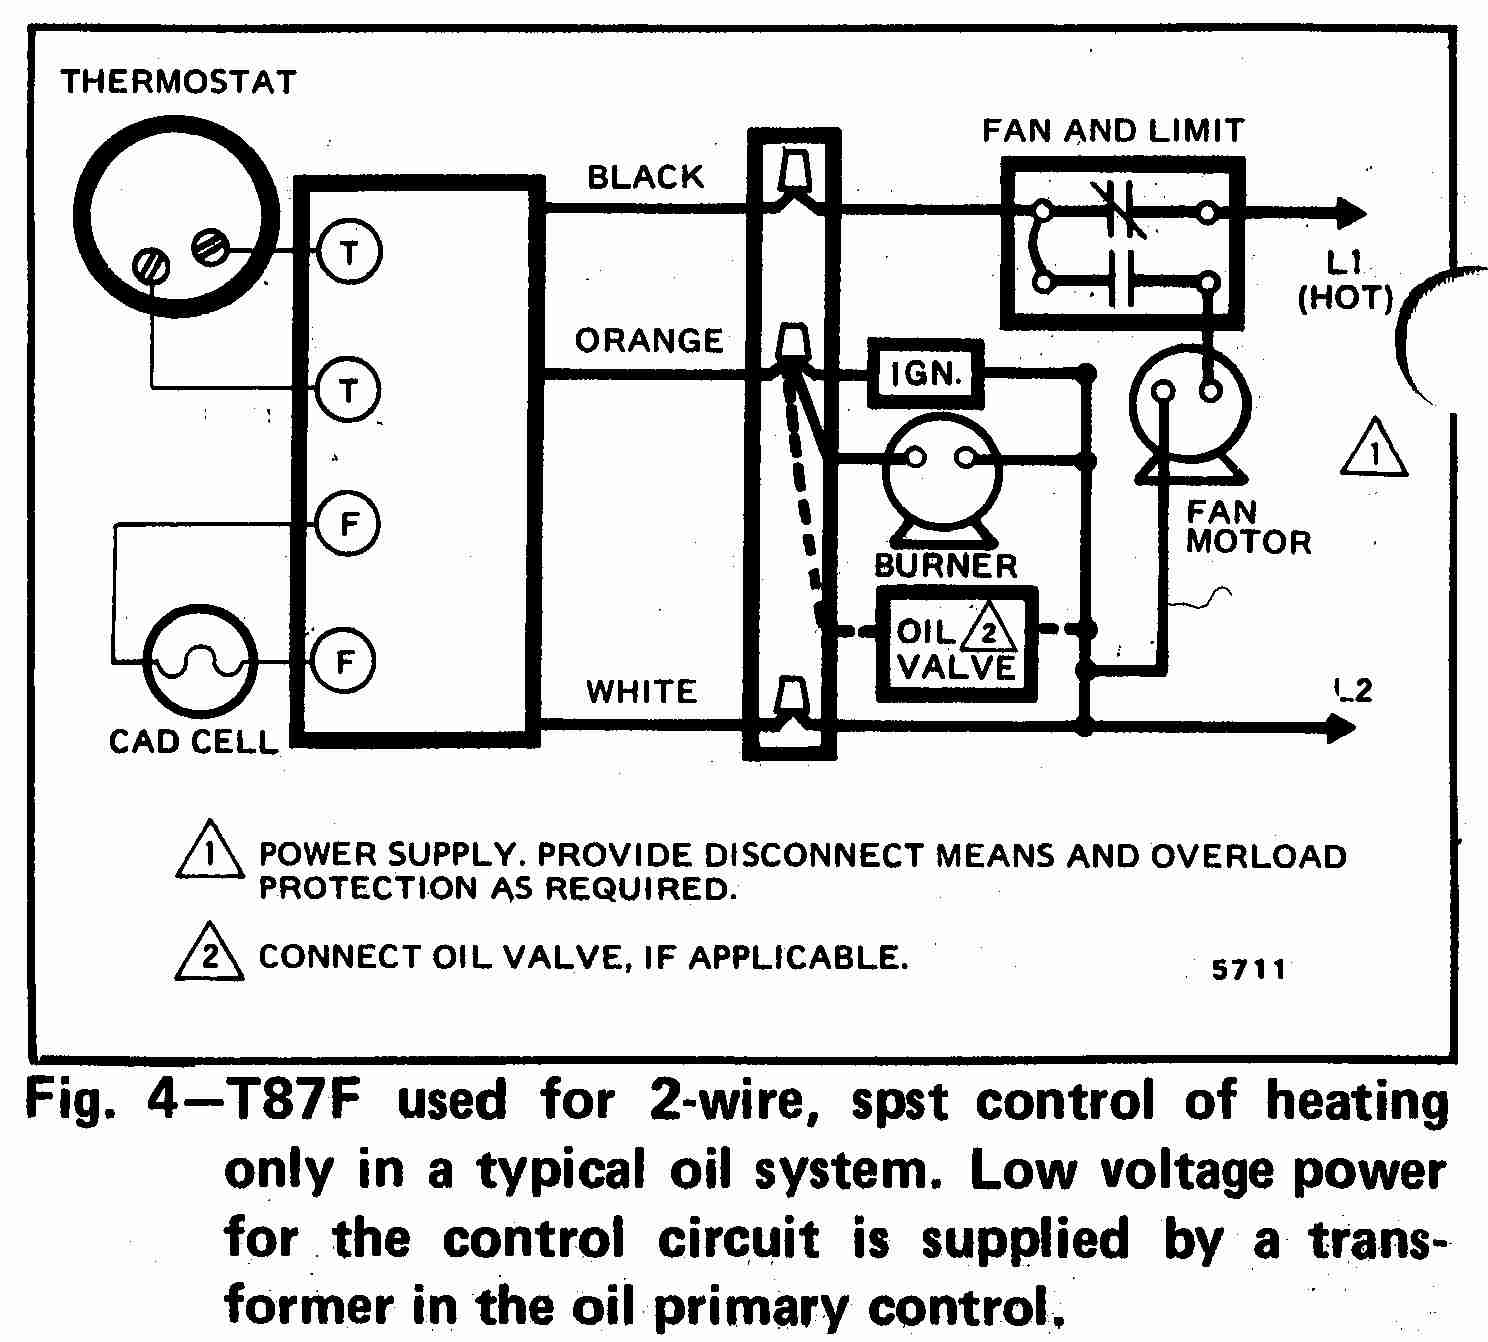 TT_T87F_0002_2W_DJF room thermostat wiring diagrams for hvac systems wire diagram for honeywell thermostat at arjmand.co